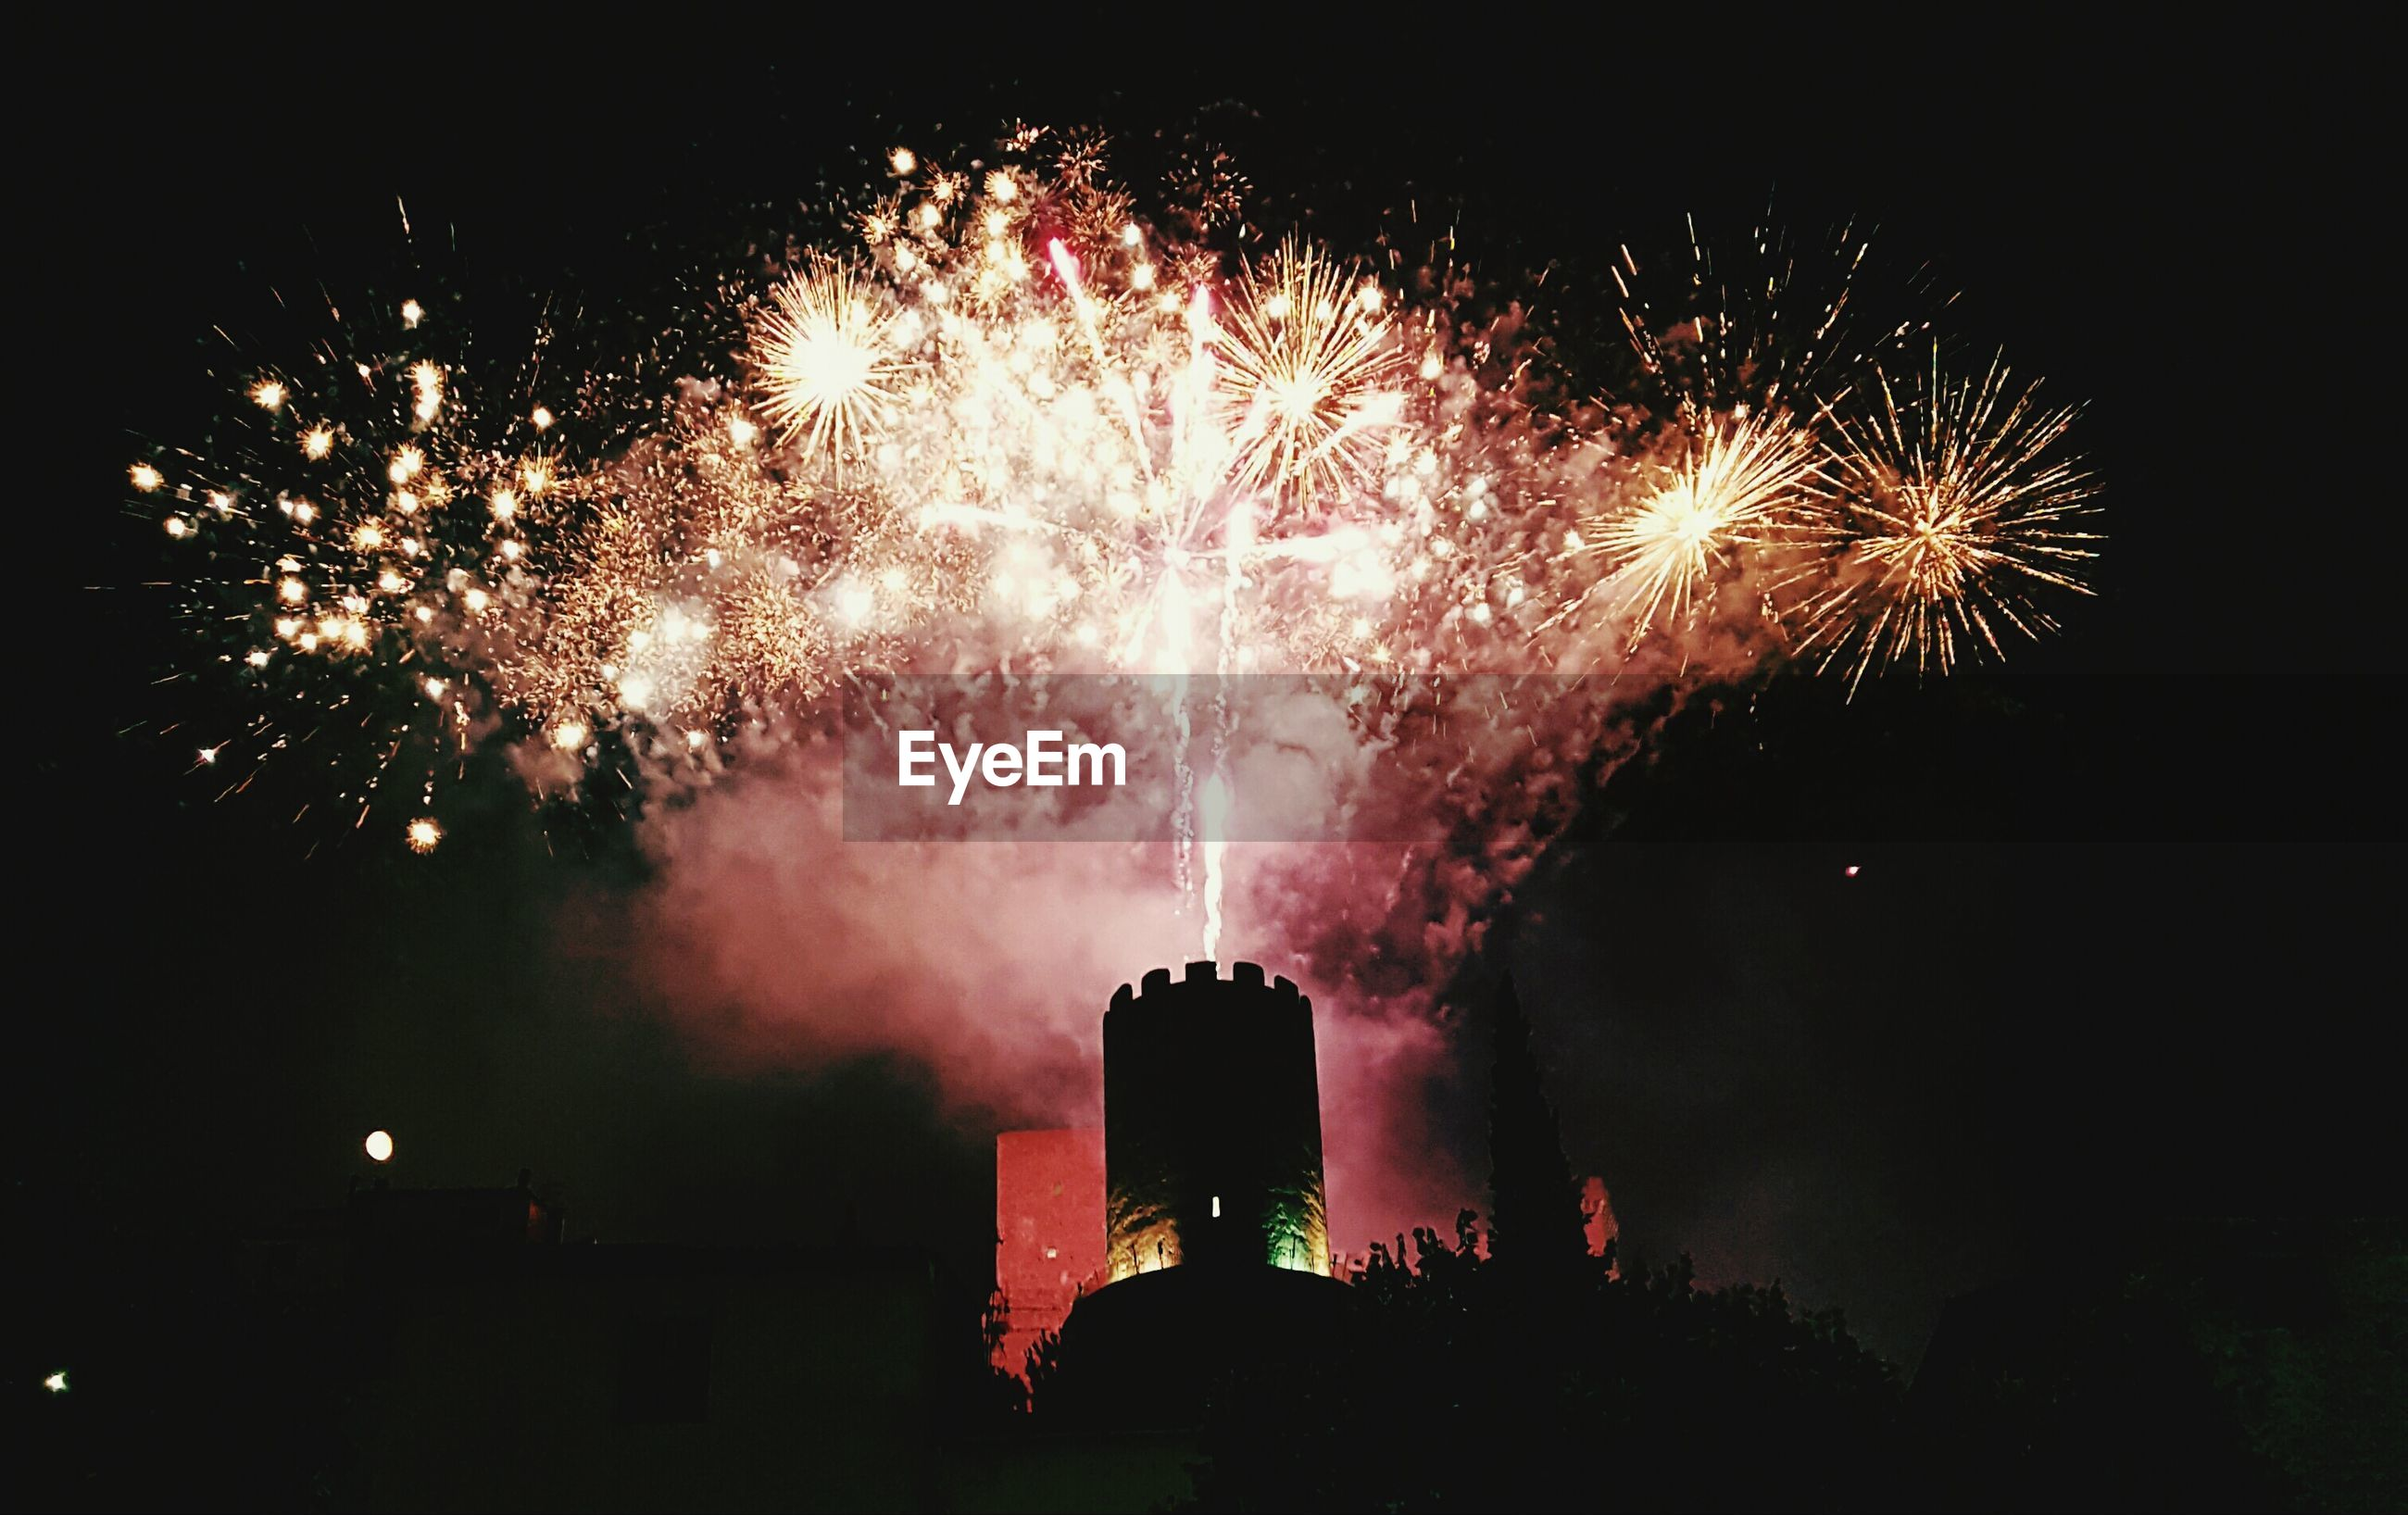 View of buildings with fireworks in sky at night